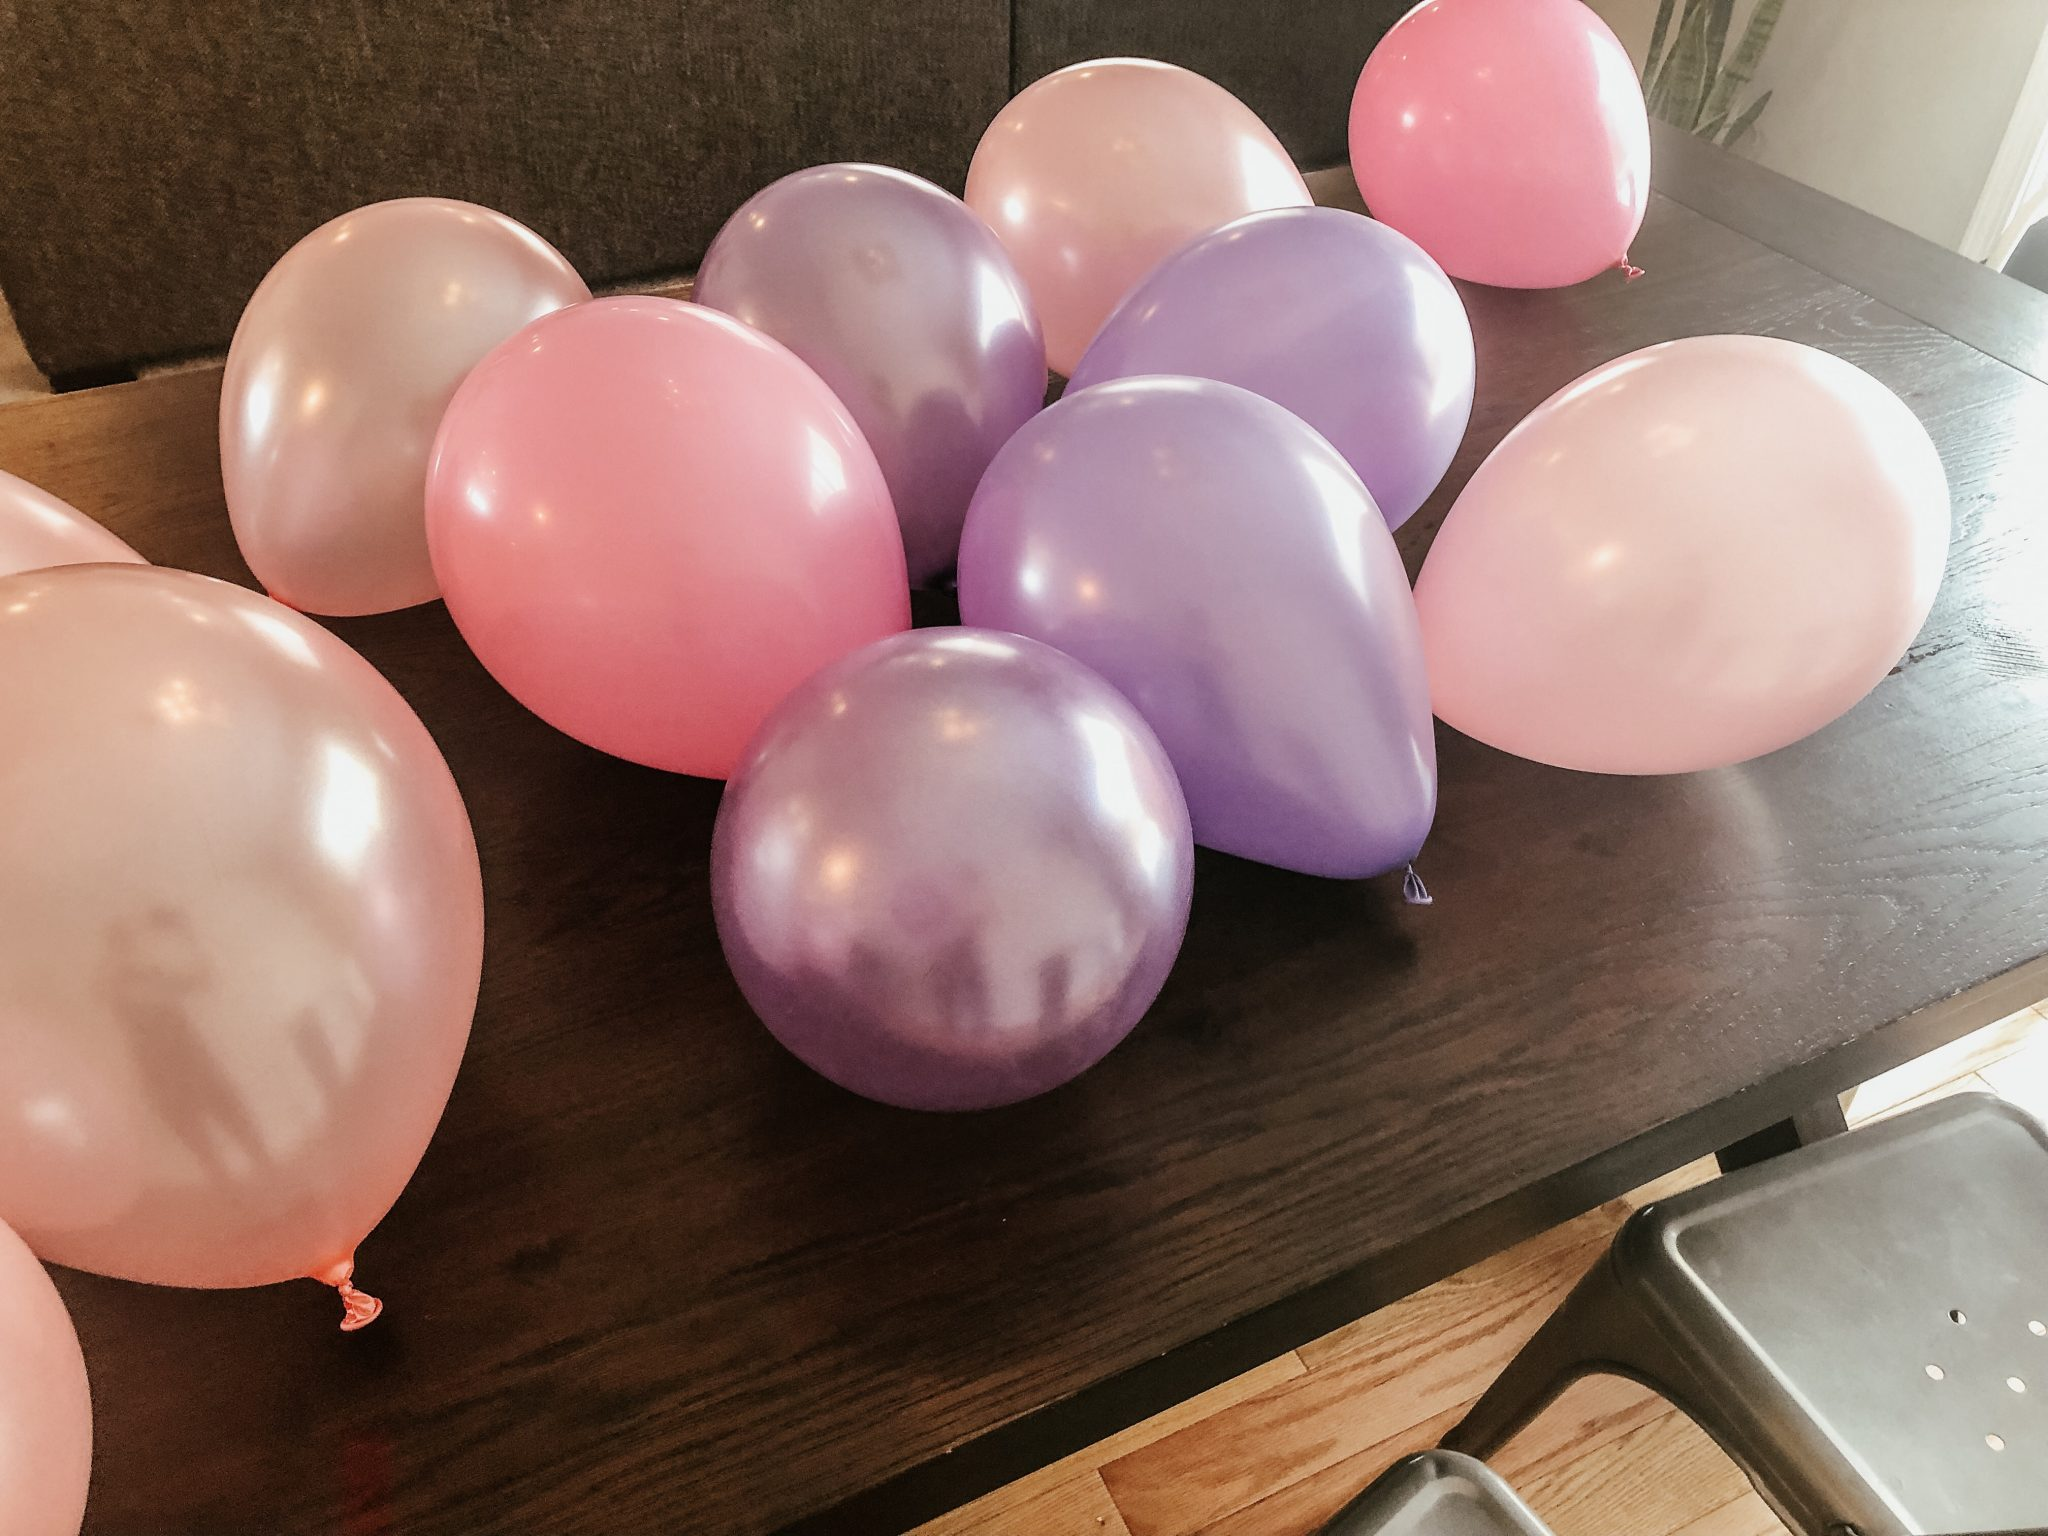 parties made easy | Daily Splendor Life and Style Blog | birthday party, girls party, party box, party decorations #birthdaydecorations #partysupplies #balloongarland #sponsored